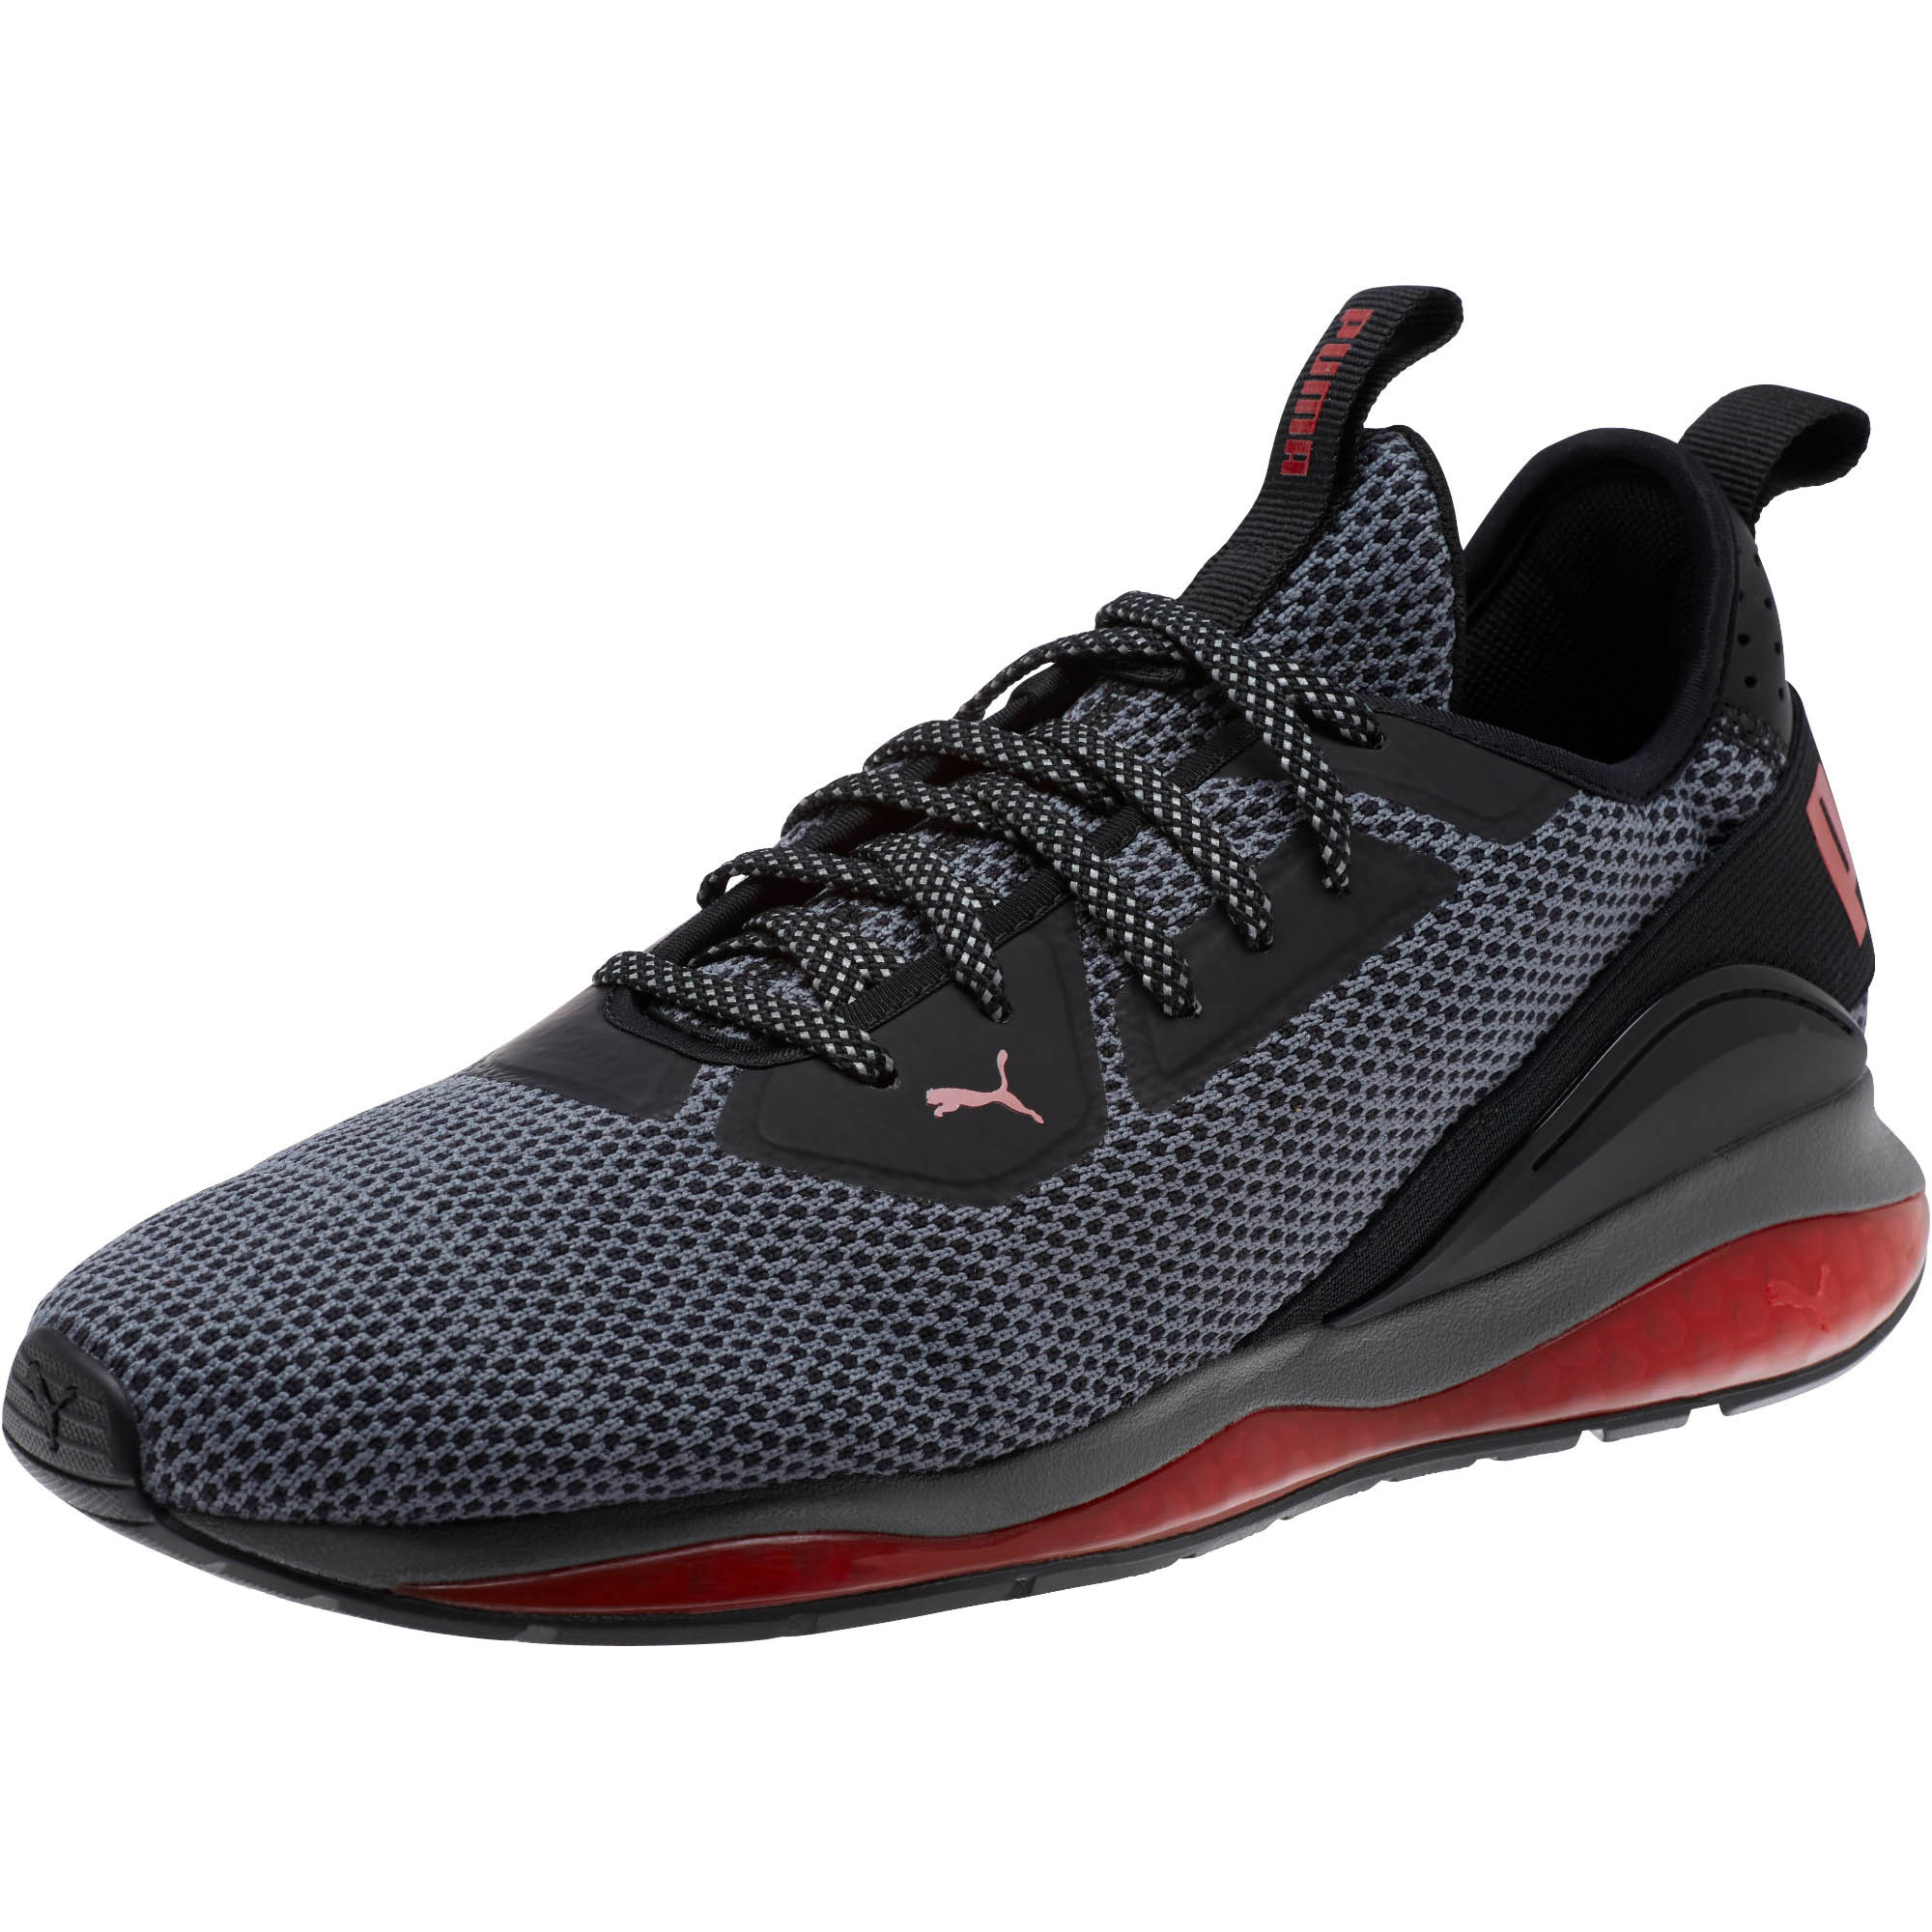 PUMA-Men-039-s-CELL-Descend-Running-Shoes thumbnail 4